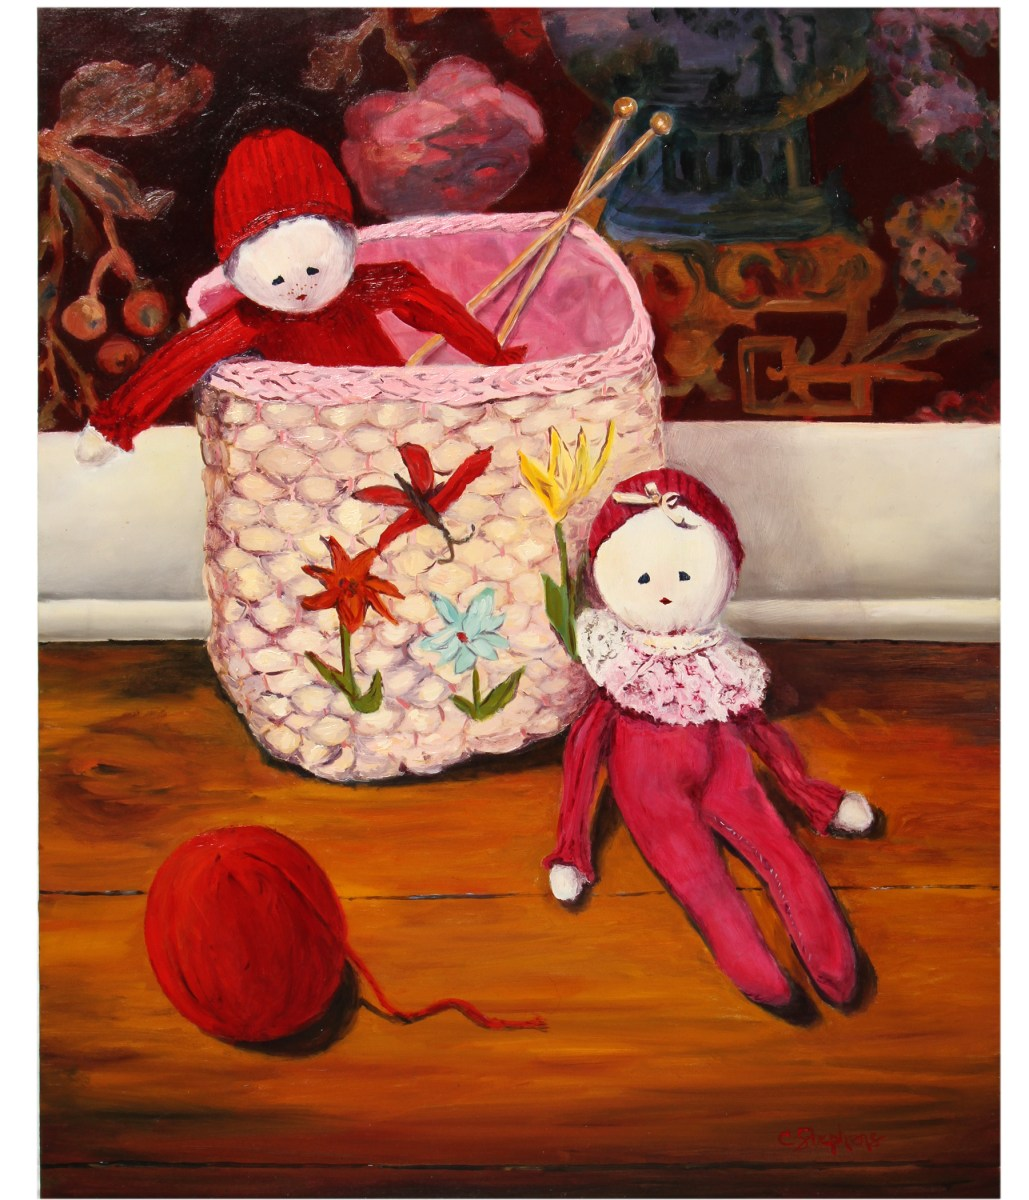 """Original Oil Painting by Catherine Stephens, """"Nursery Pals"""" Oil on Panel, 20"""" x 16."""" Framed. online"""